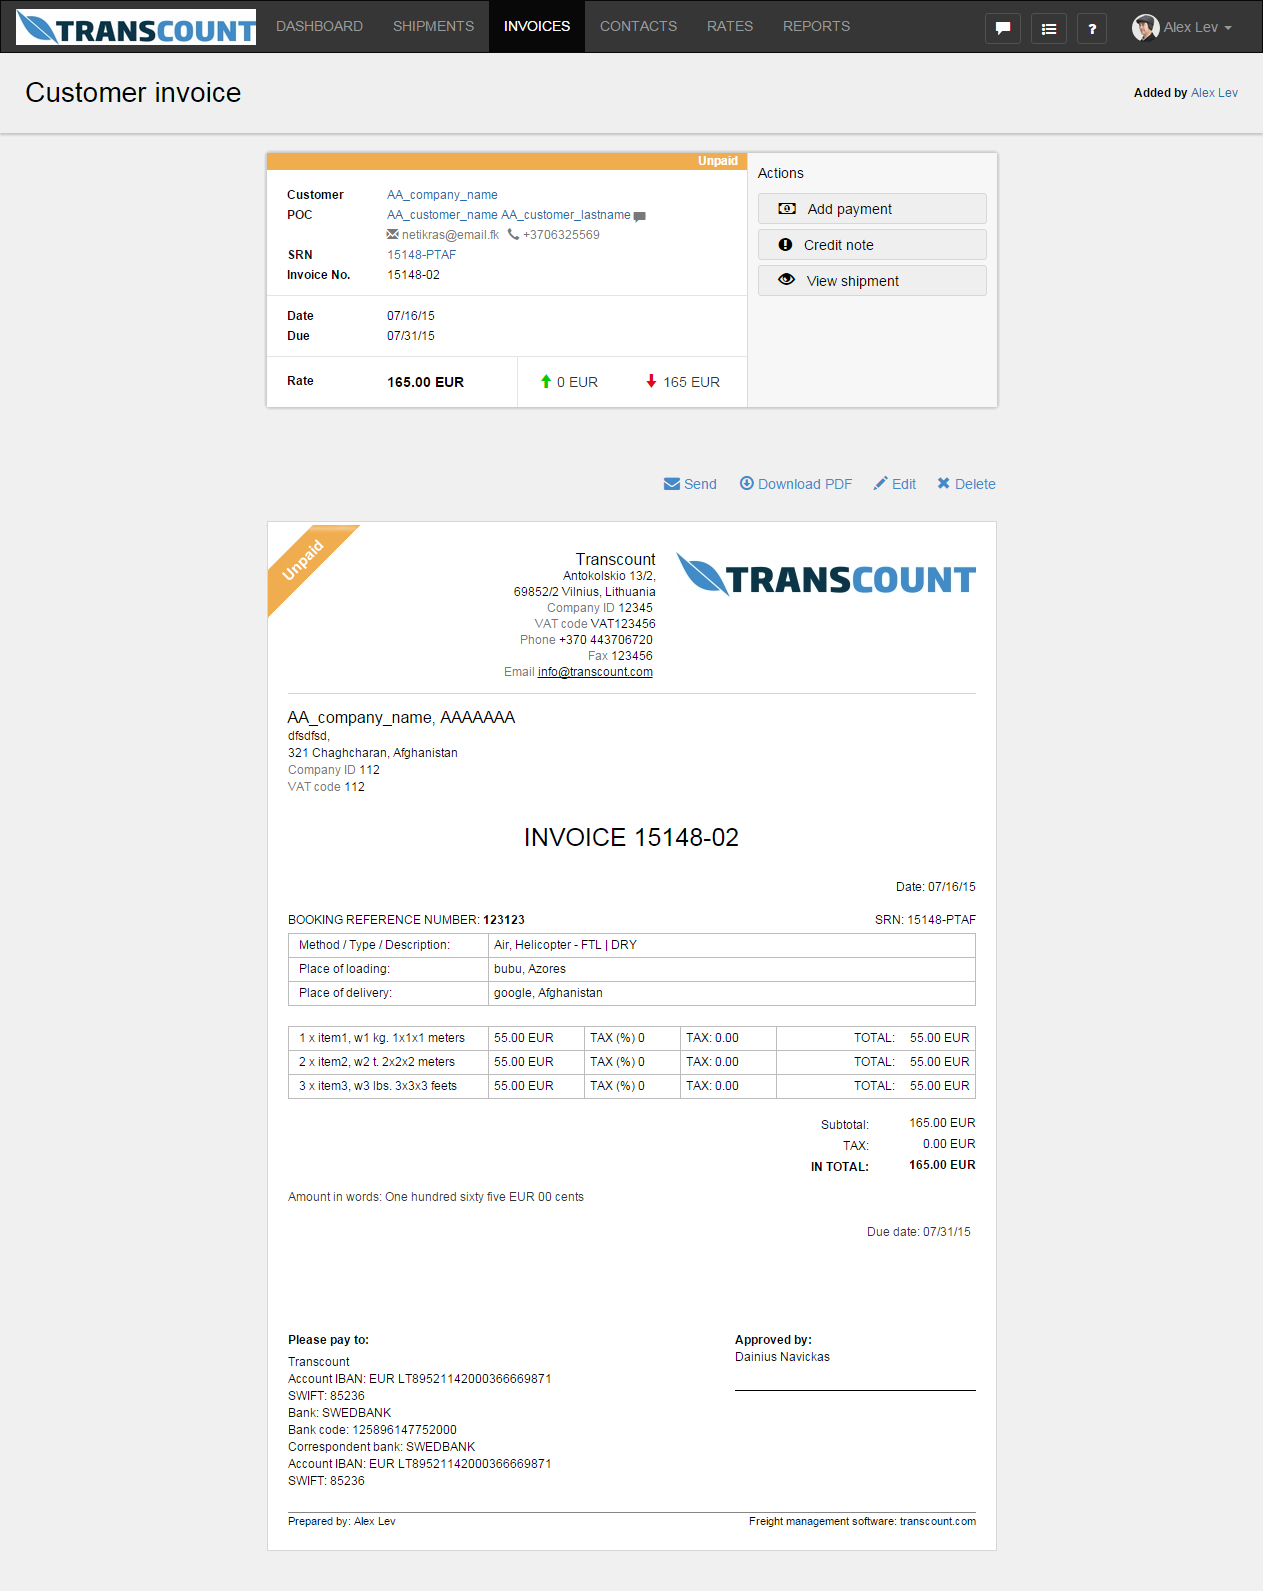 Customer invoice